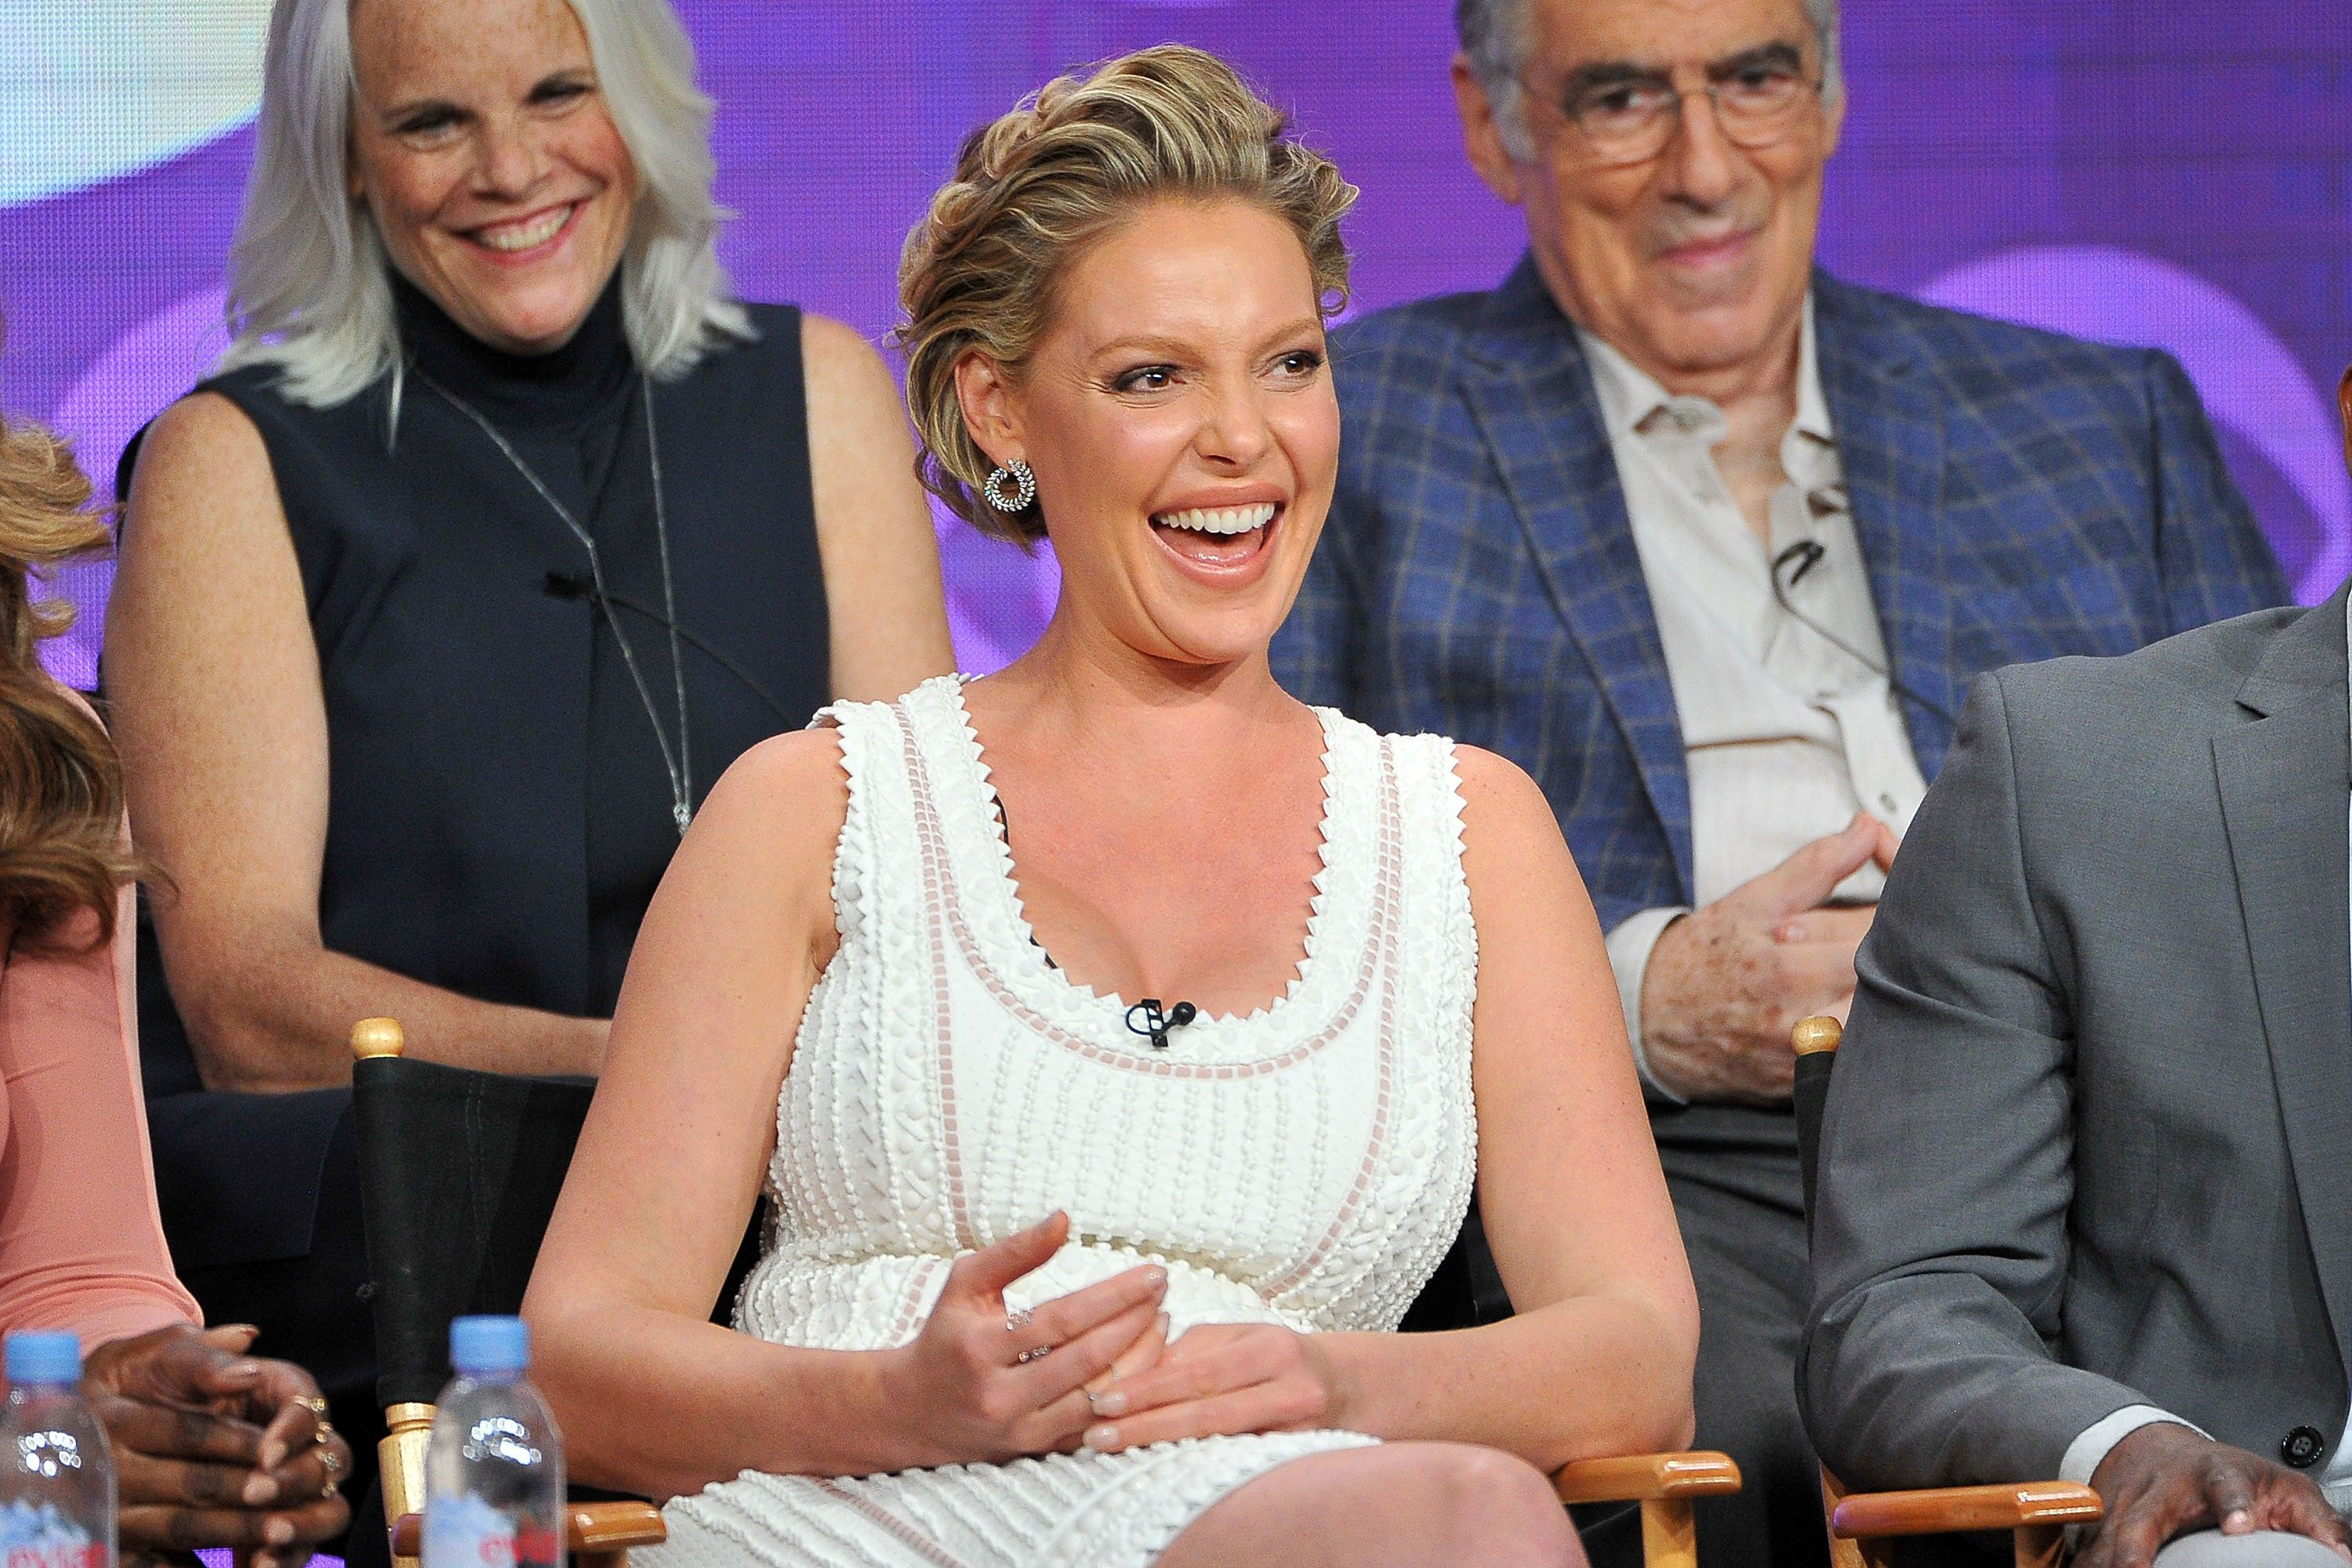 BEVERLY HILLS, CA - AUGUST 10: Katherine Heigl attends the CBS 2016 Summer TCA Panel at The Beverly Hilton Hotel on August 10, 2016 in Beverly Hills, California.  (Photo by Jerod Harris/WireImage)